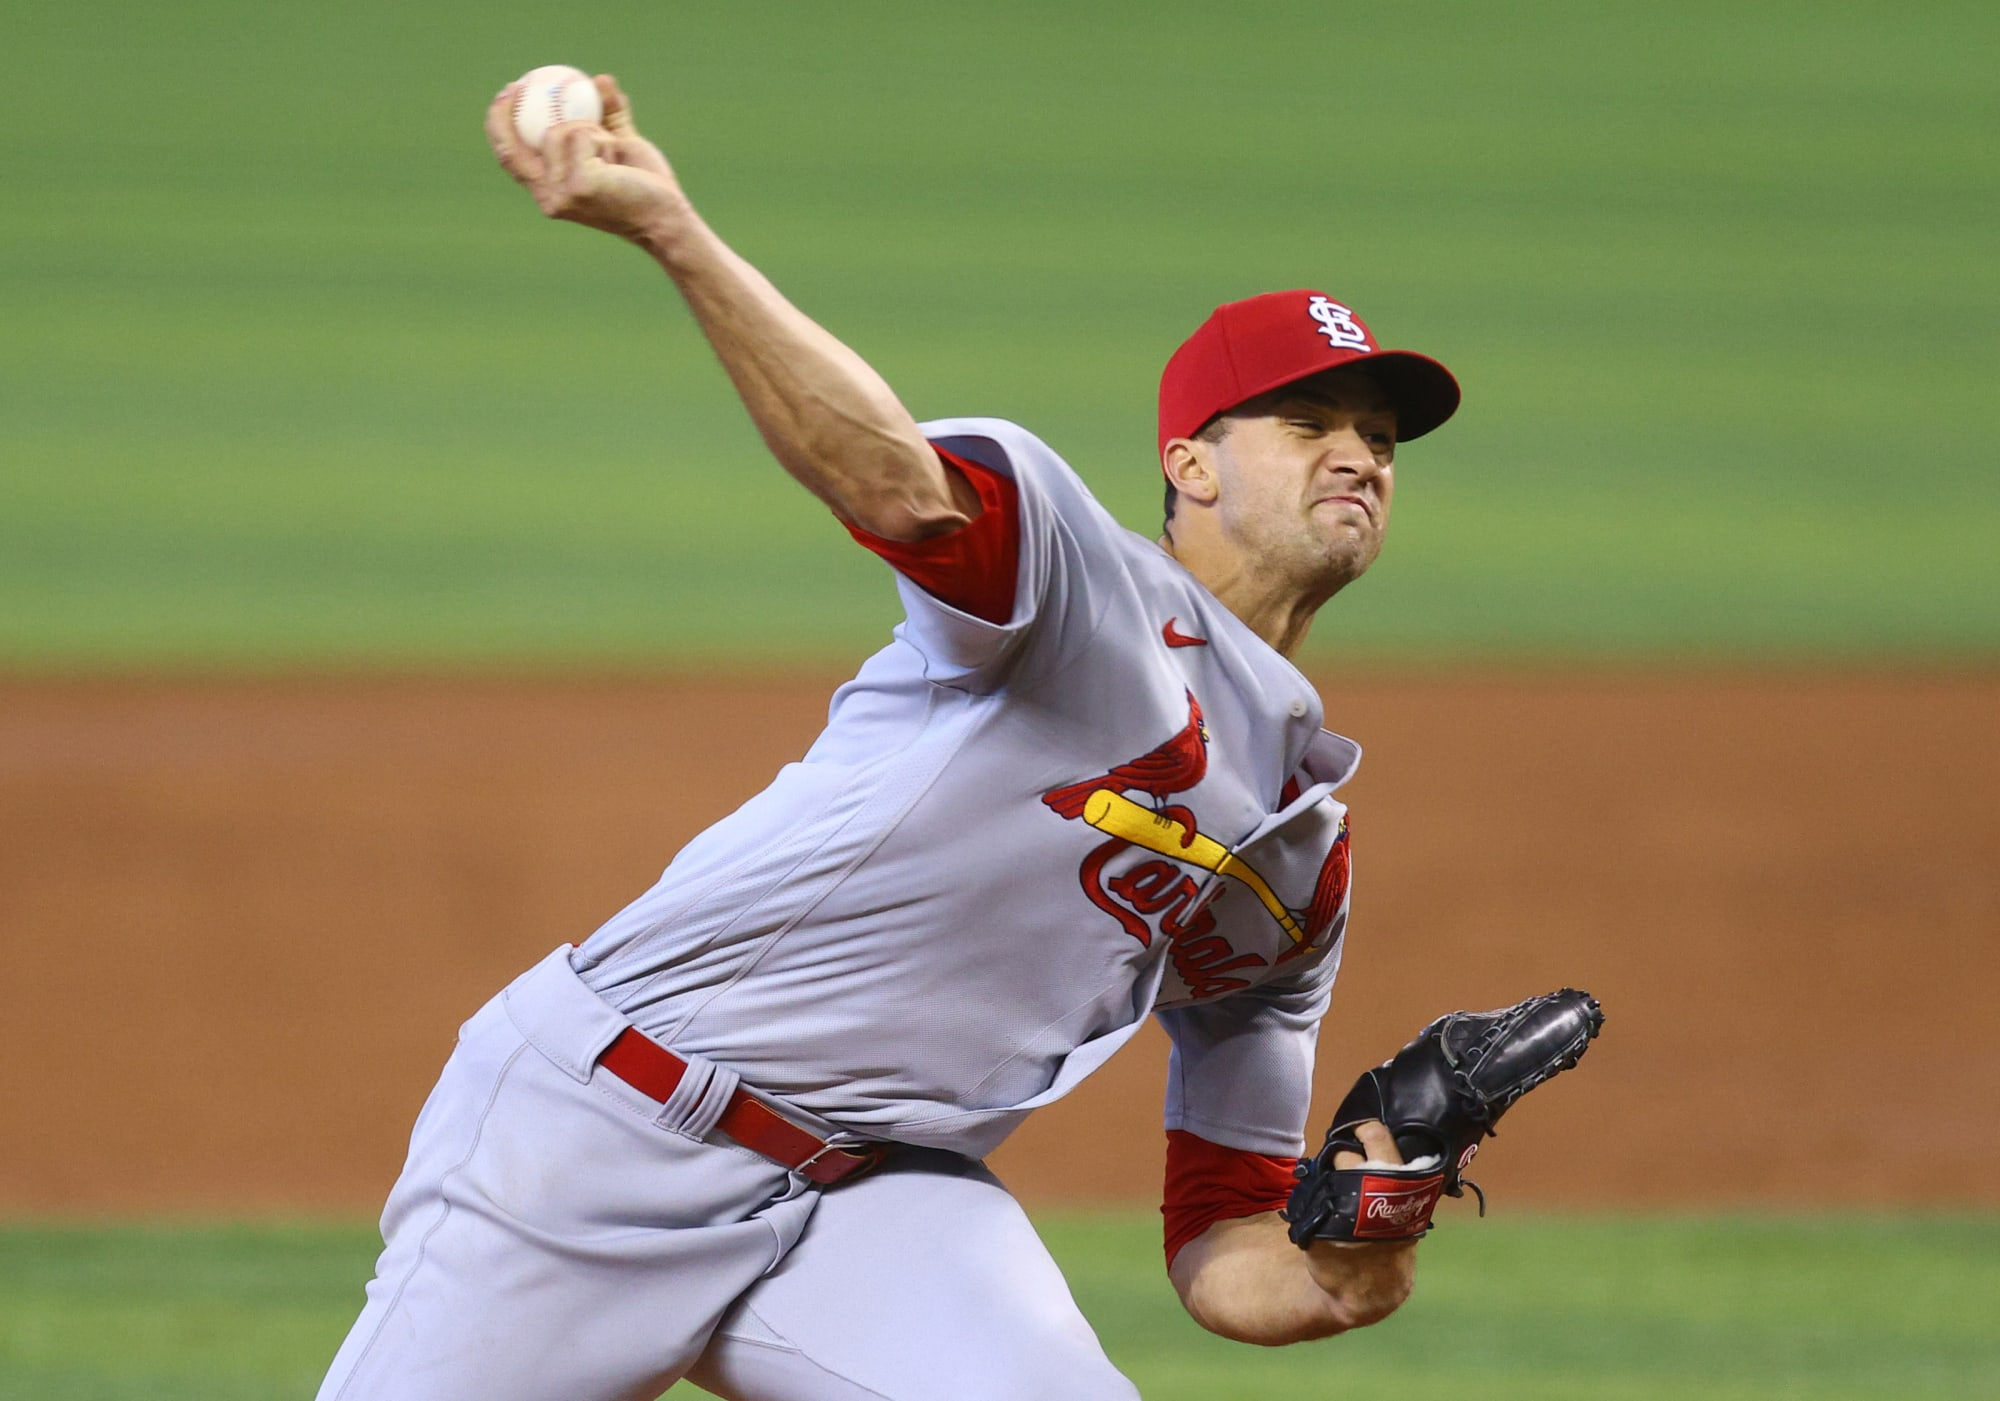 Cardinals: Jack Flaherty out until early August at the soonest